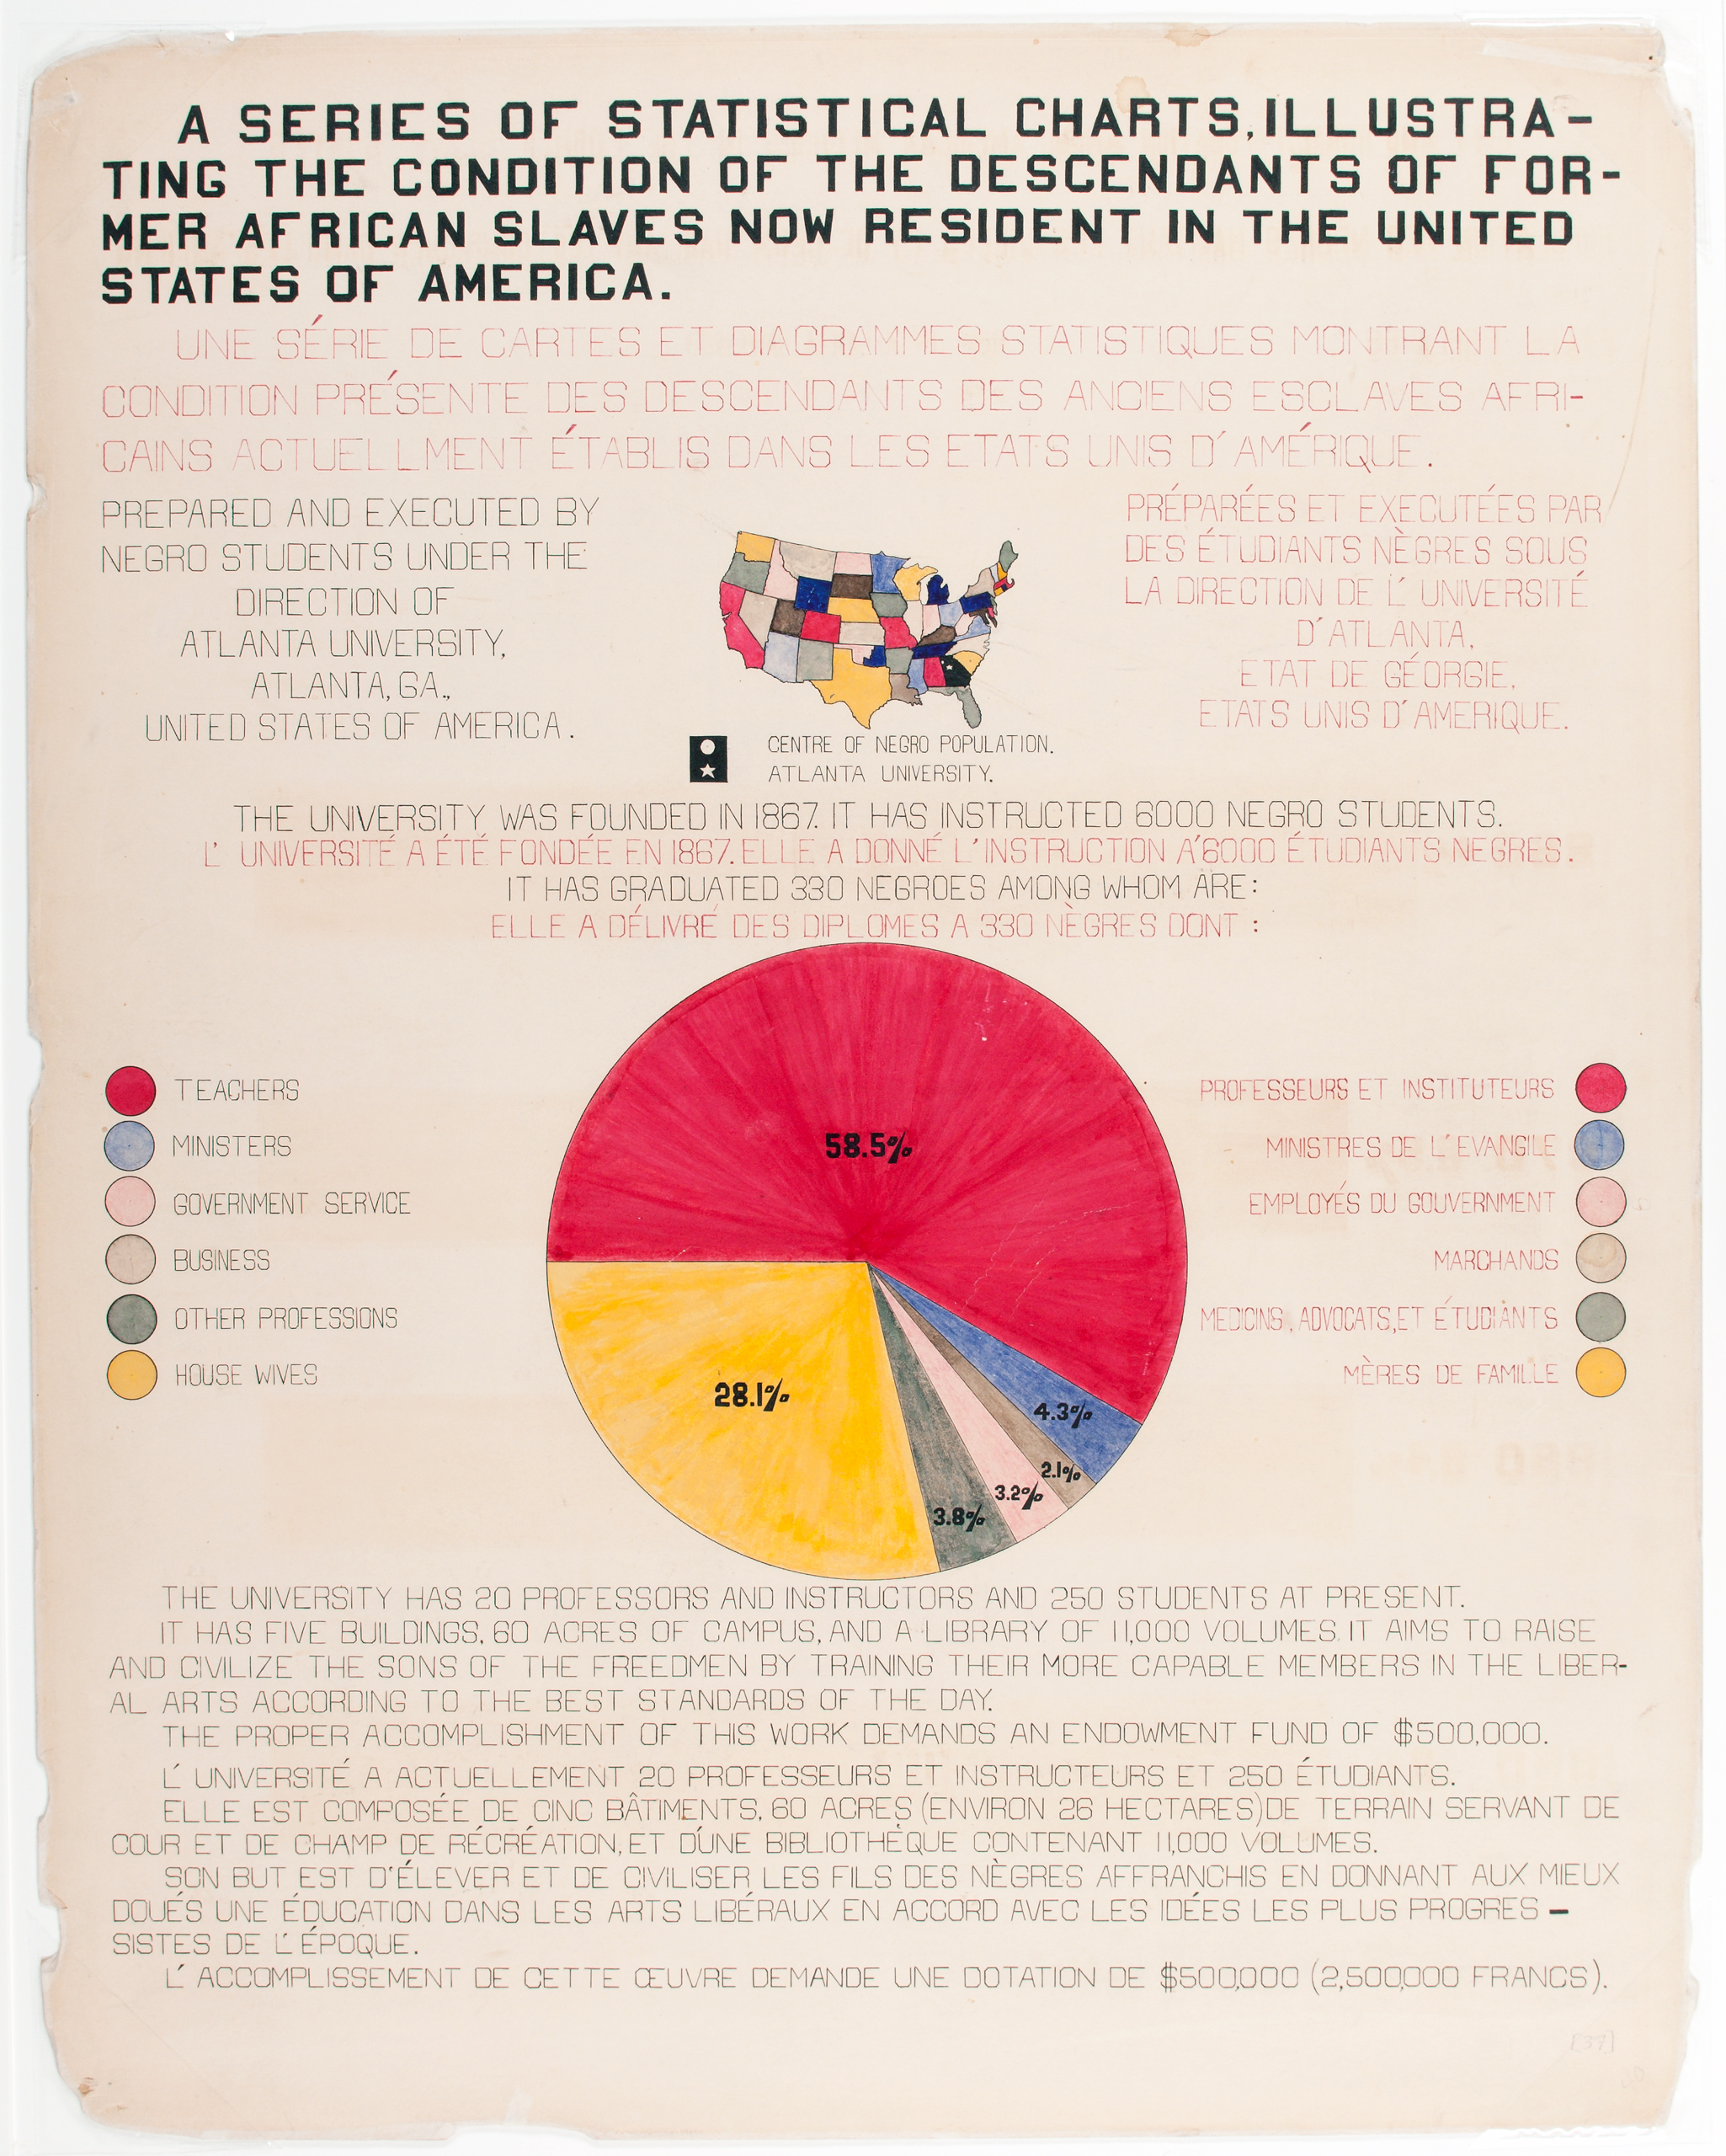 Chart prepared by Atlanta University students for the Negro Exhibit of the American Section at the Paris Exposition Universelle in 1900 to show the economic and social progress of African Americans since emancipation.